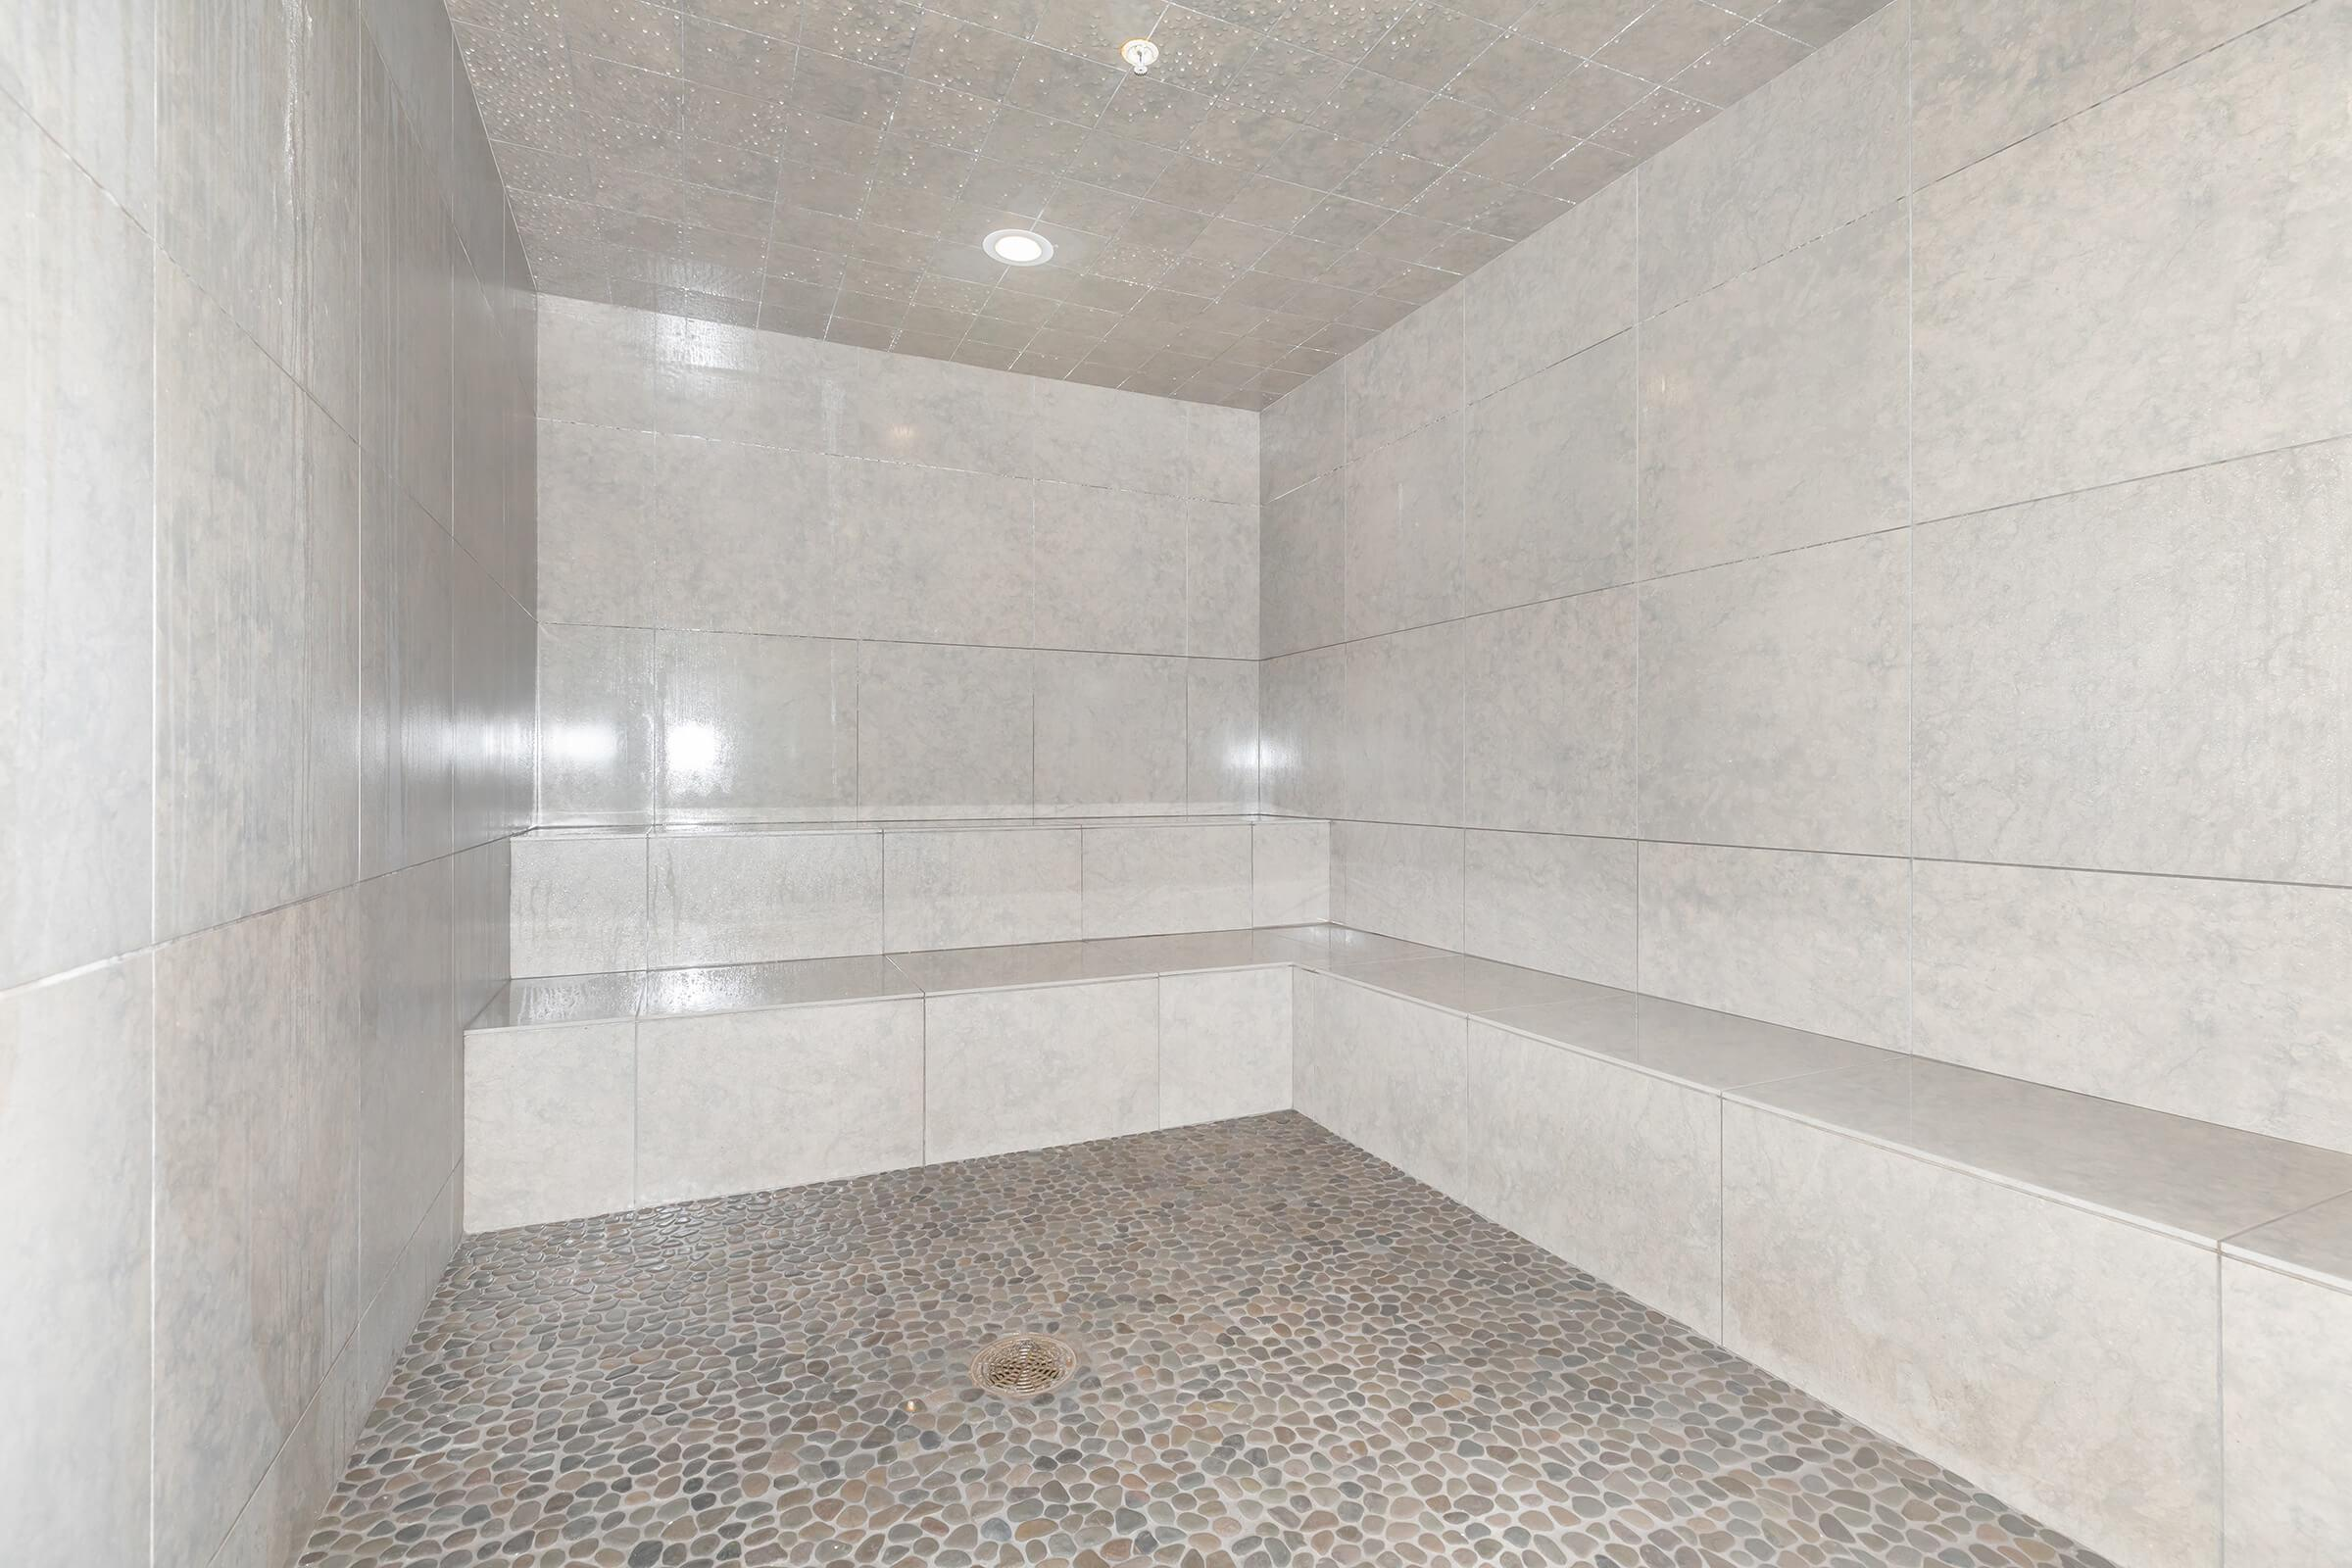 a room with tile walls